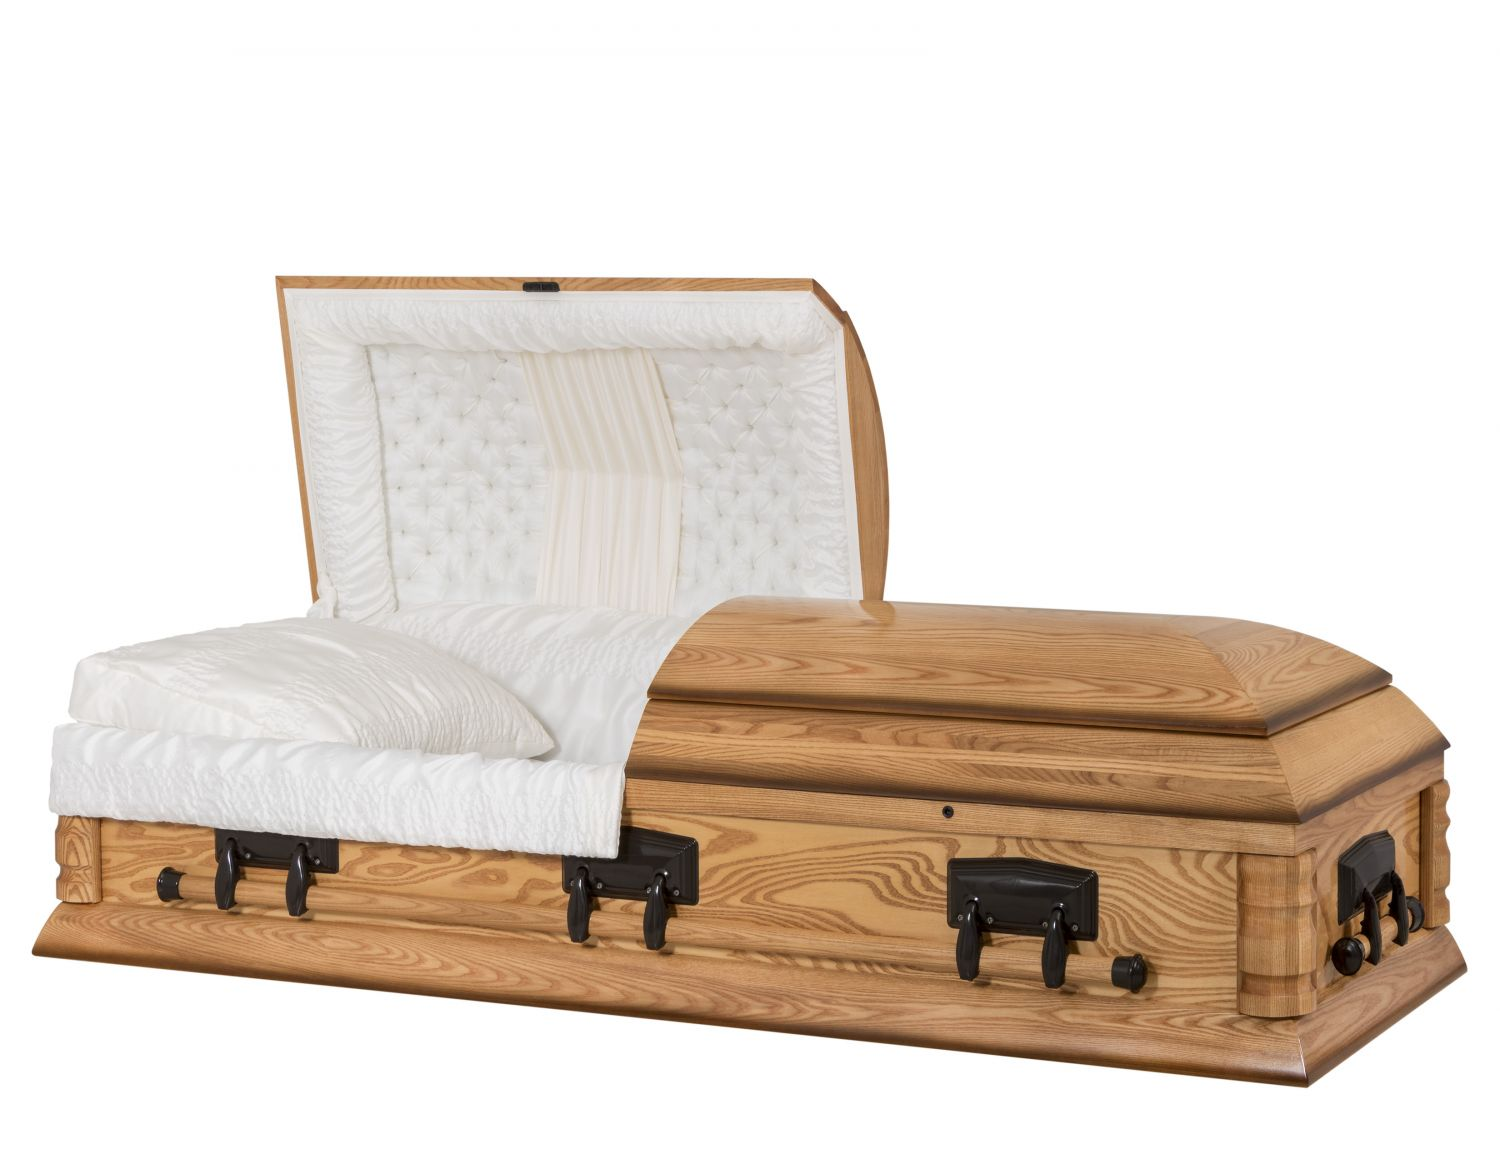 Concept Caskets 40203-00143-N ASH CASKET GLOSS  CREPE  MEDIUM  MATRESS NO H1319-4    3 X 1 BRONZE